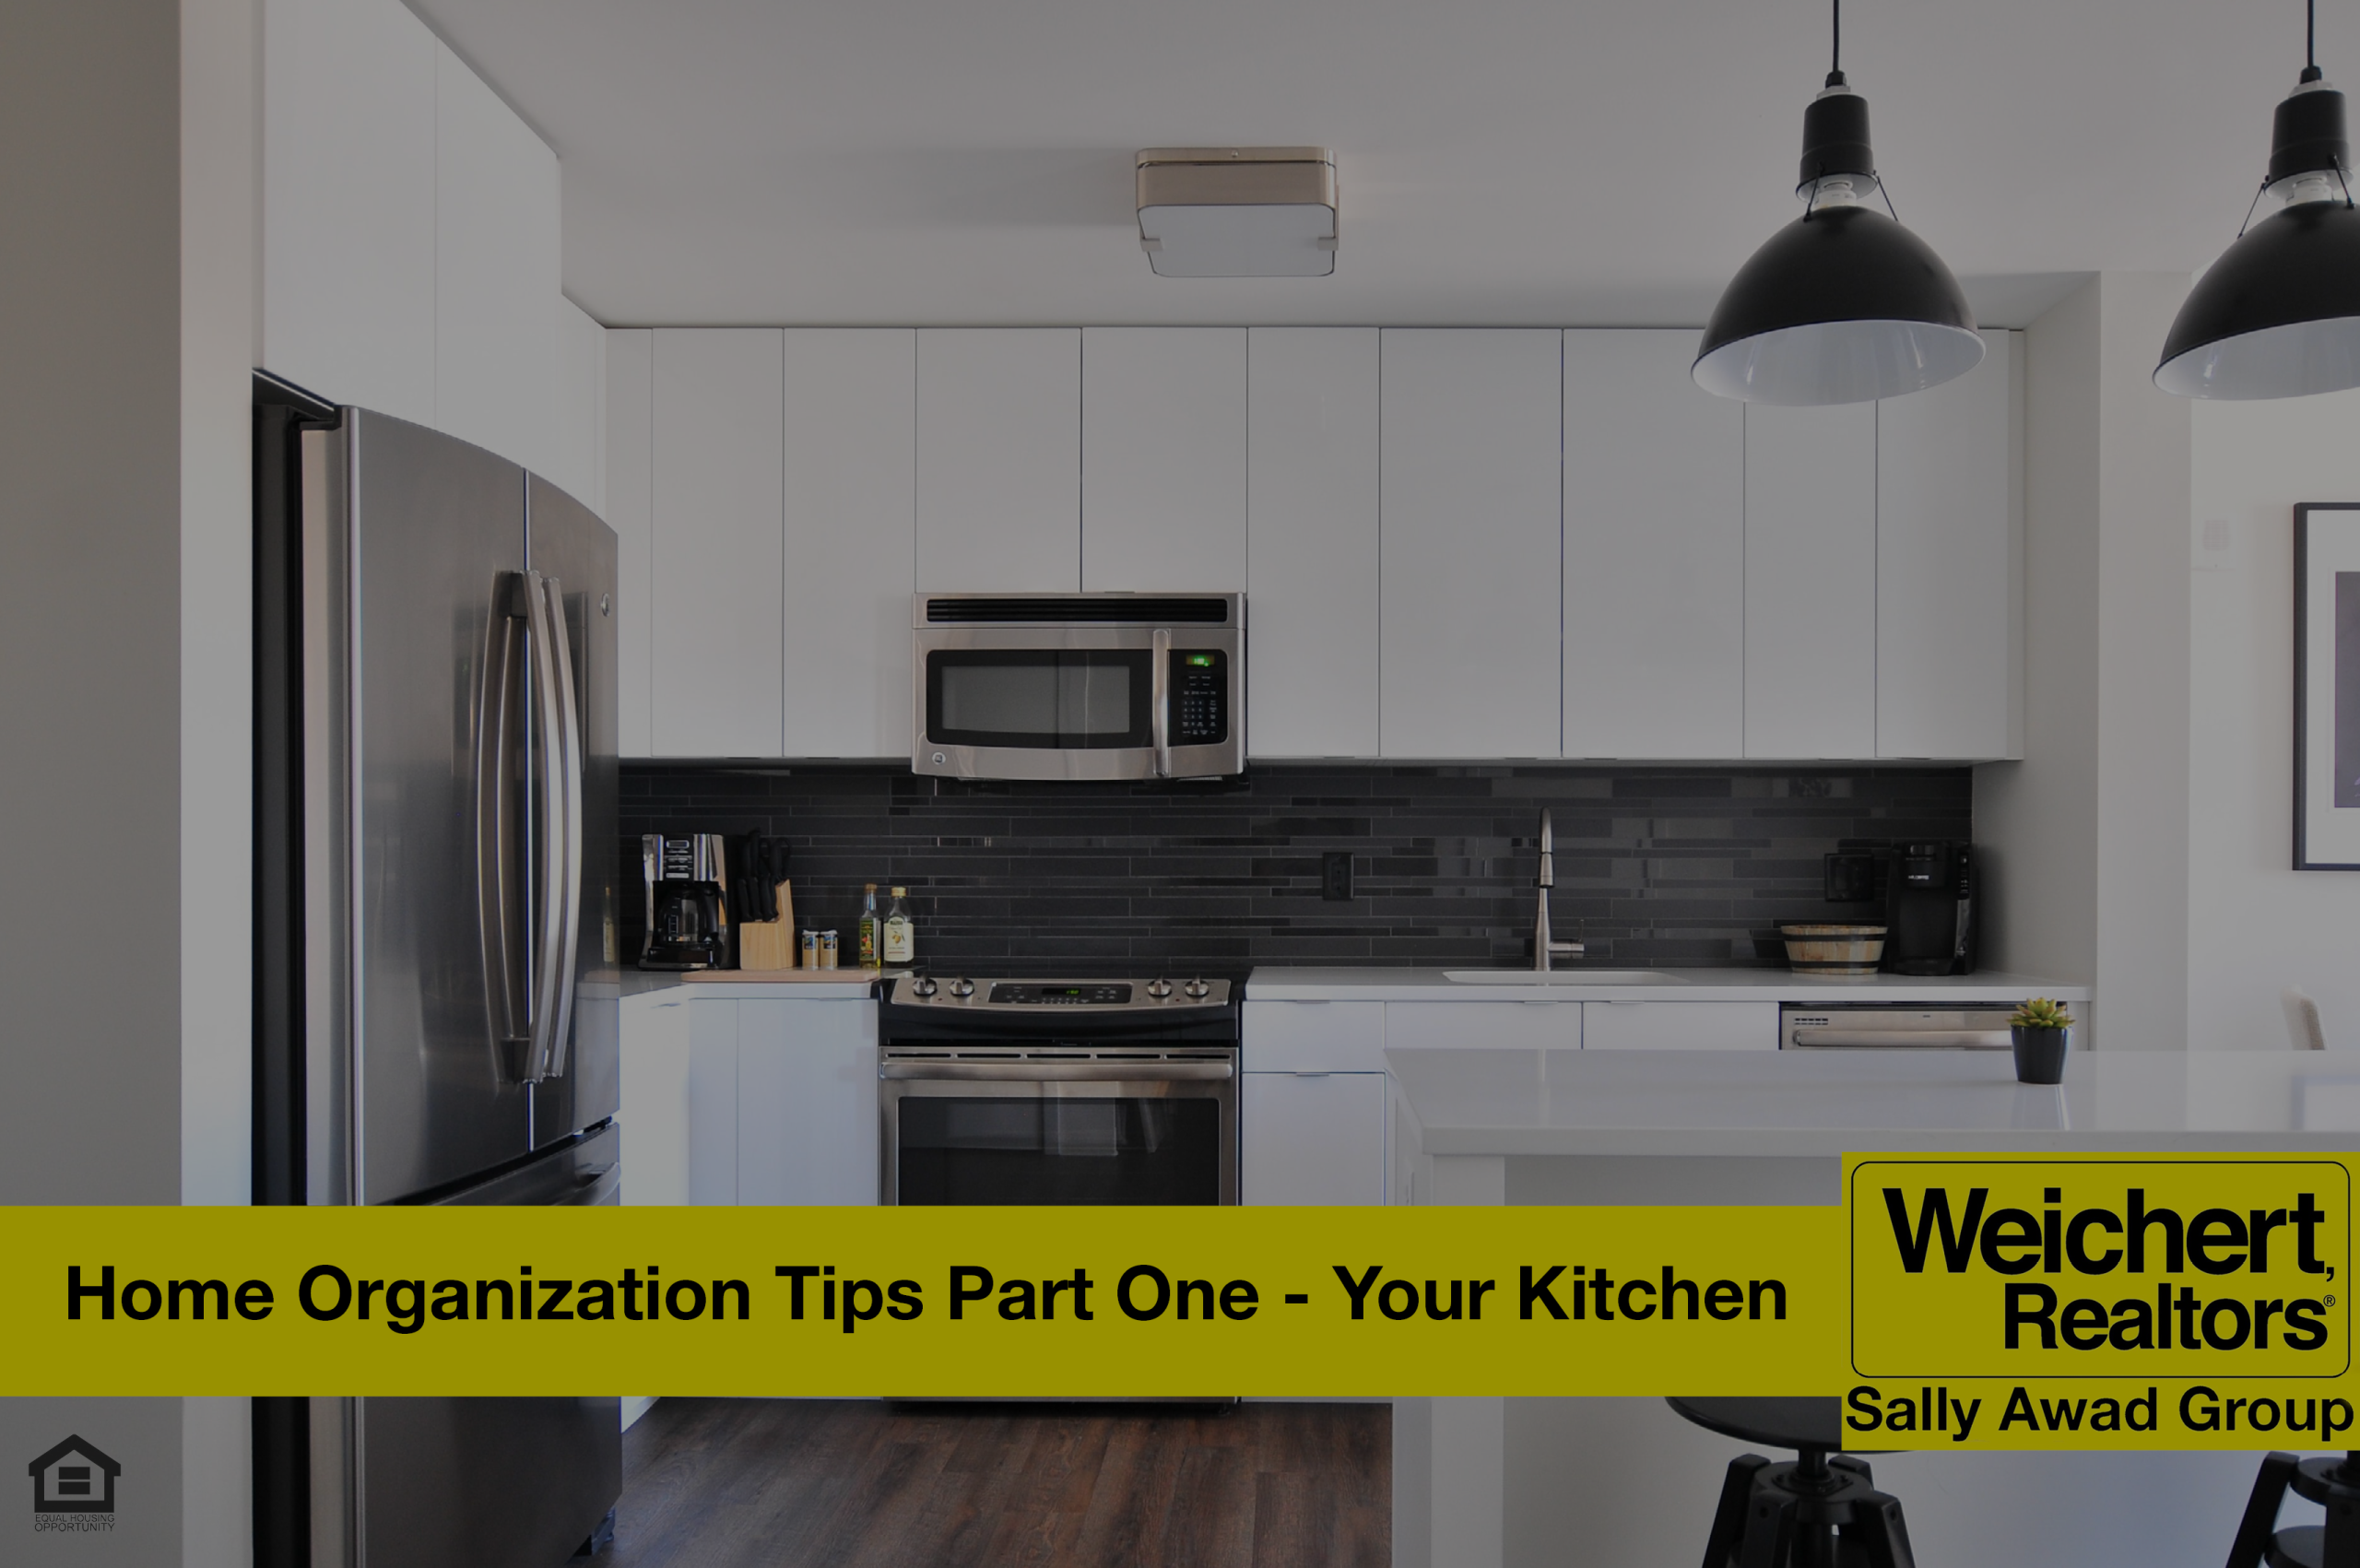 Home Organization Tips Part One- Your Kitchen